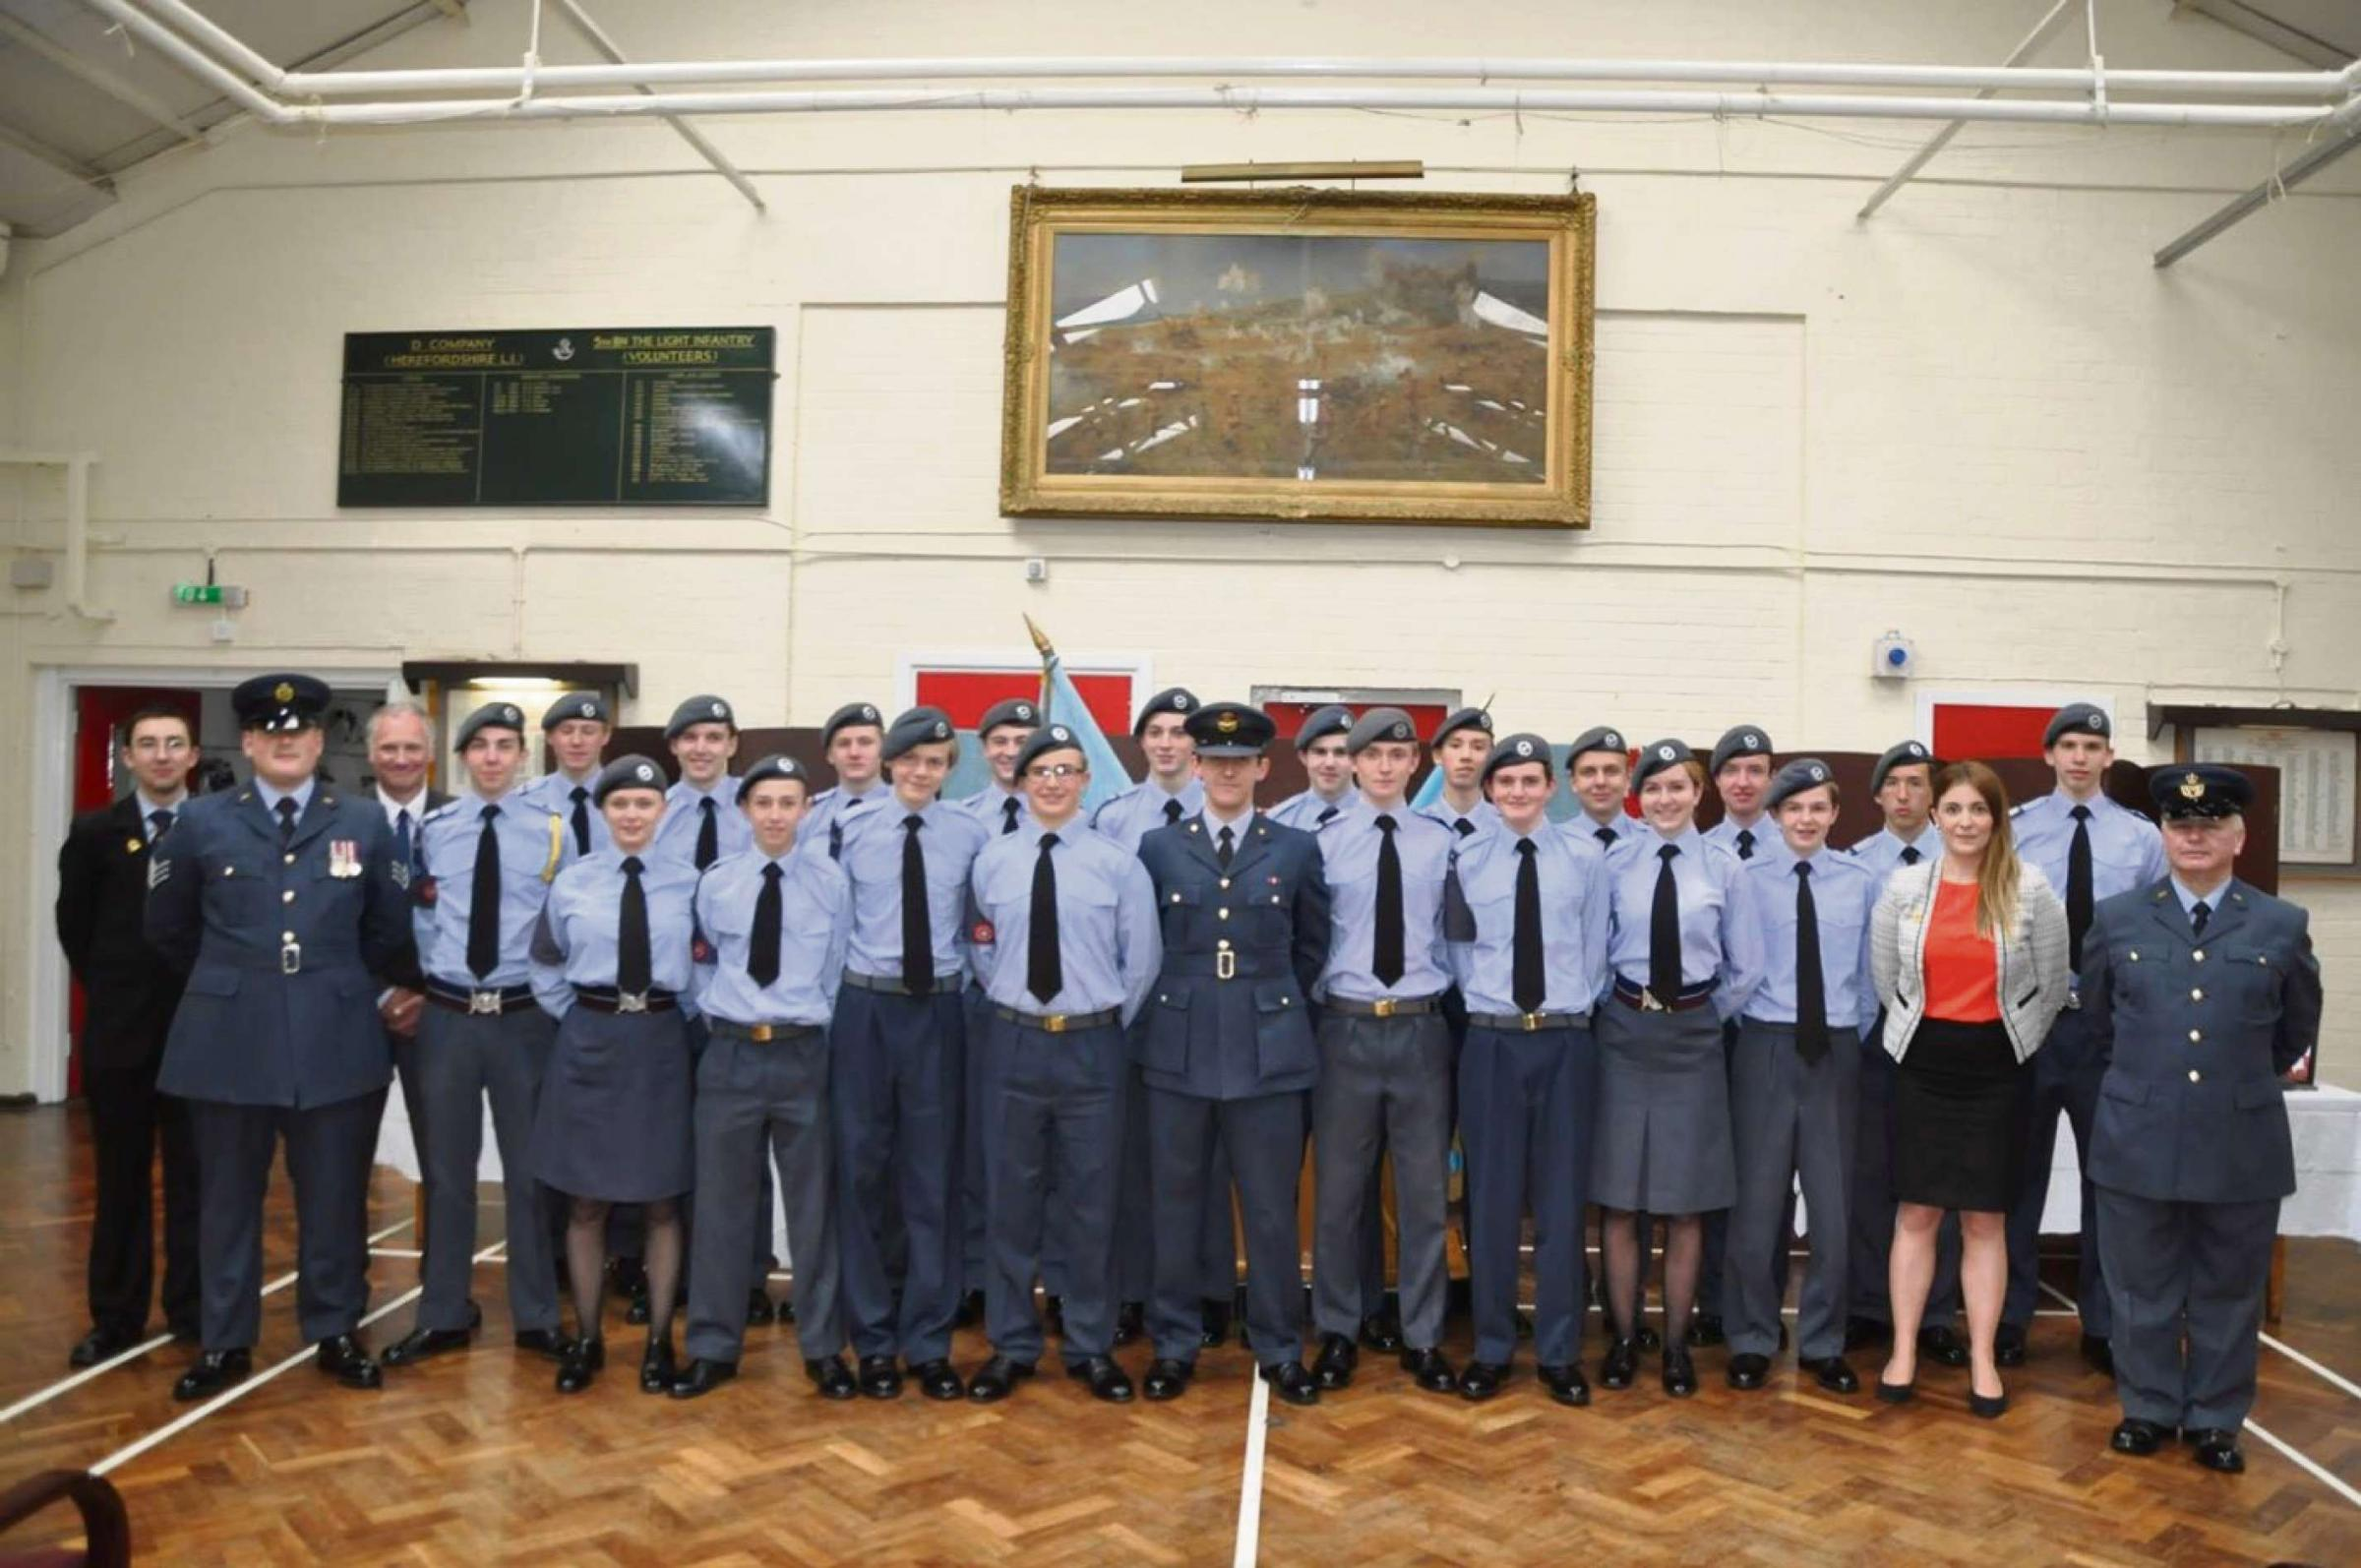 Hereford Air Cadets celebrated the squadron's 75th anniversary last month.